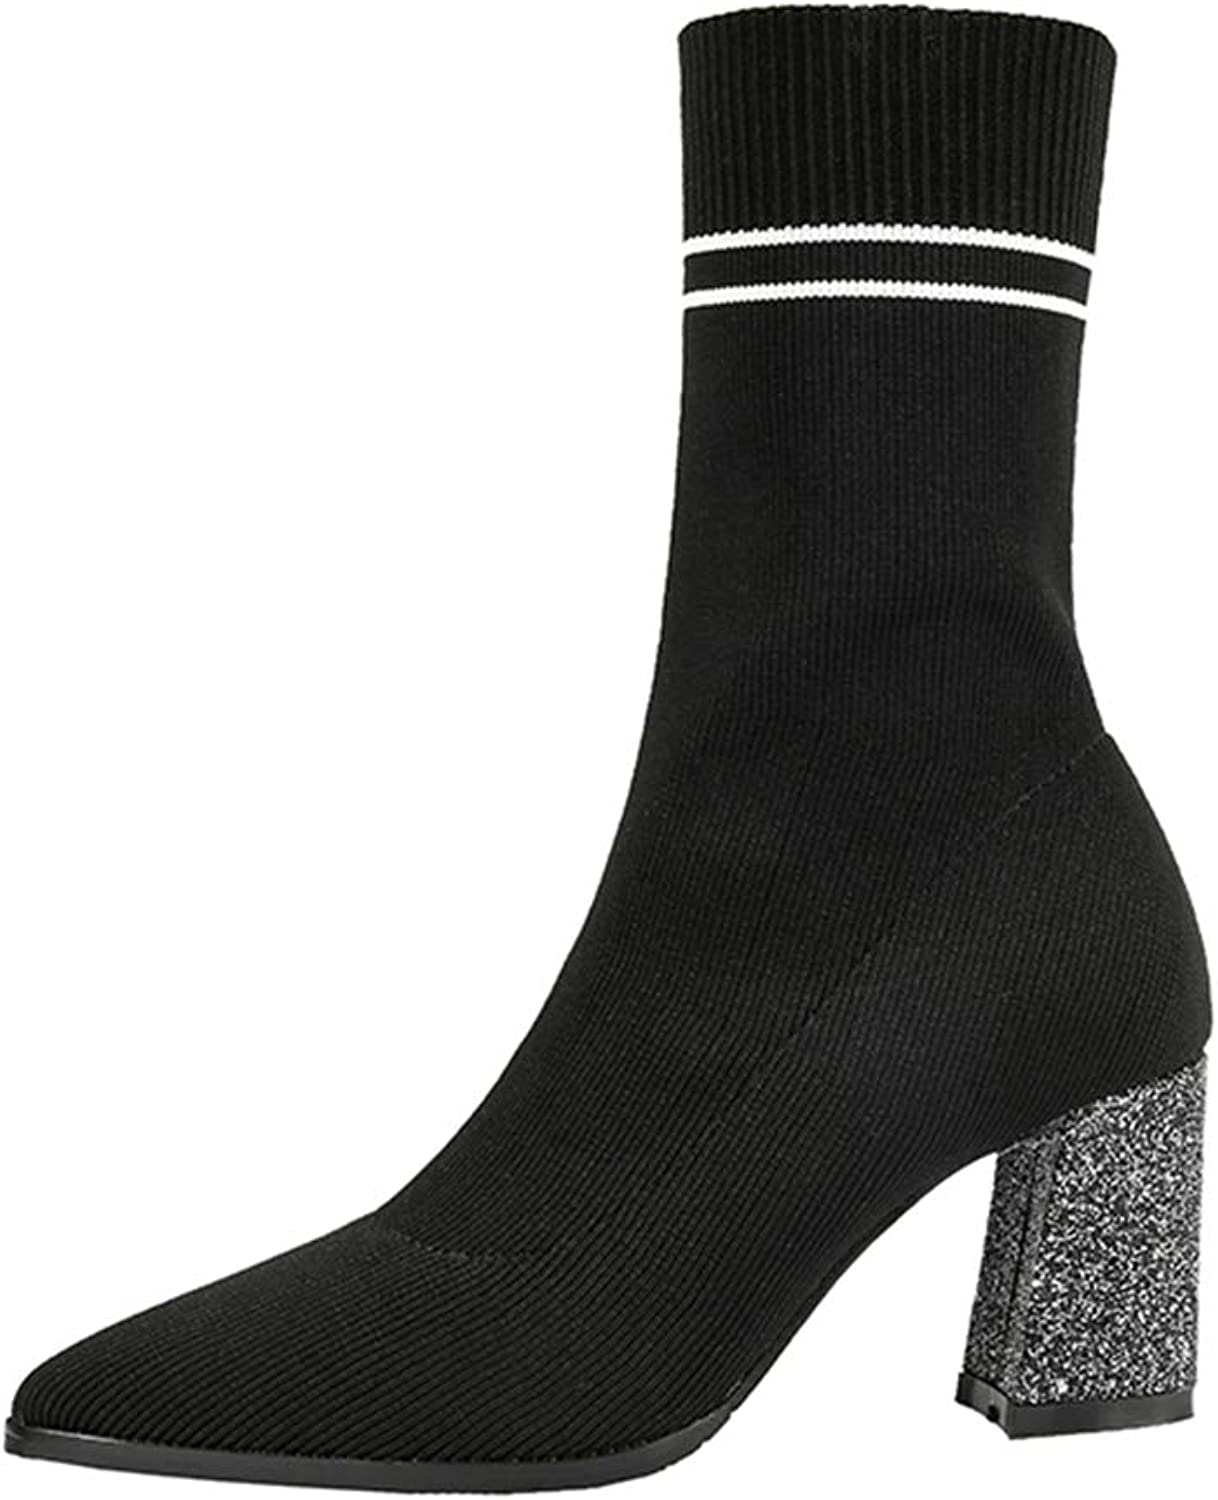 CYBLING Women's Stripe Pointed Toe Mid Calf Boots Stretch Lycra Glitter Chunky Heel Sock Boots